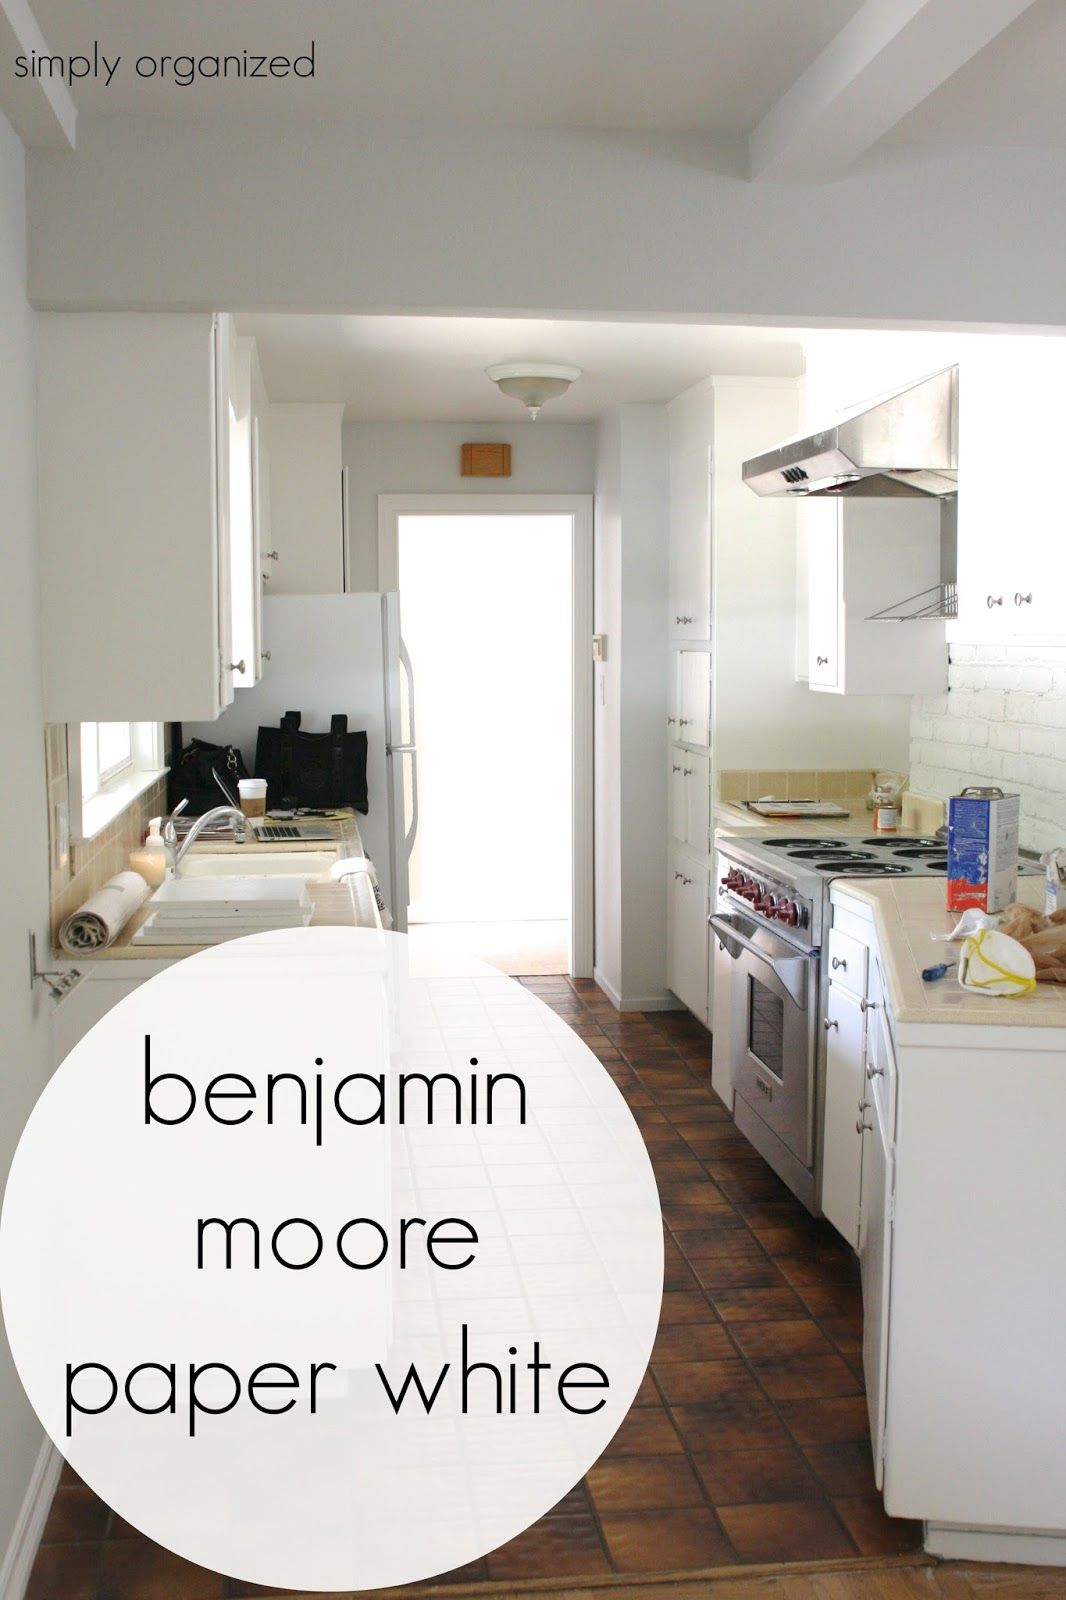 My Home Interior Paint color palate | Pinterest | Color palate ...